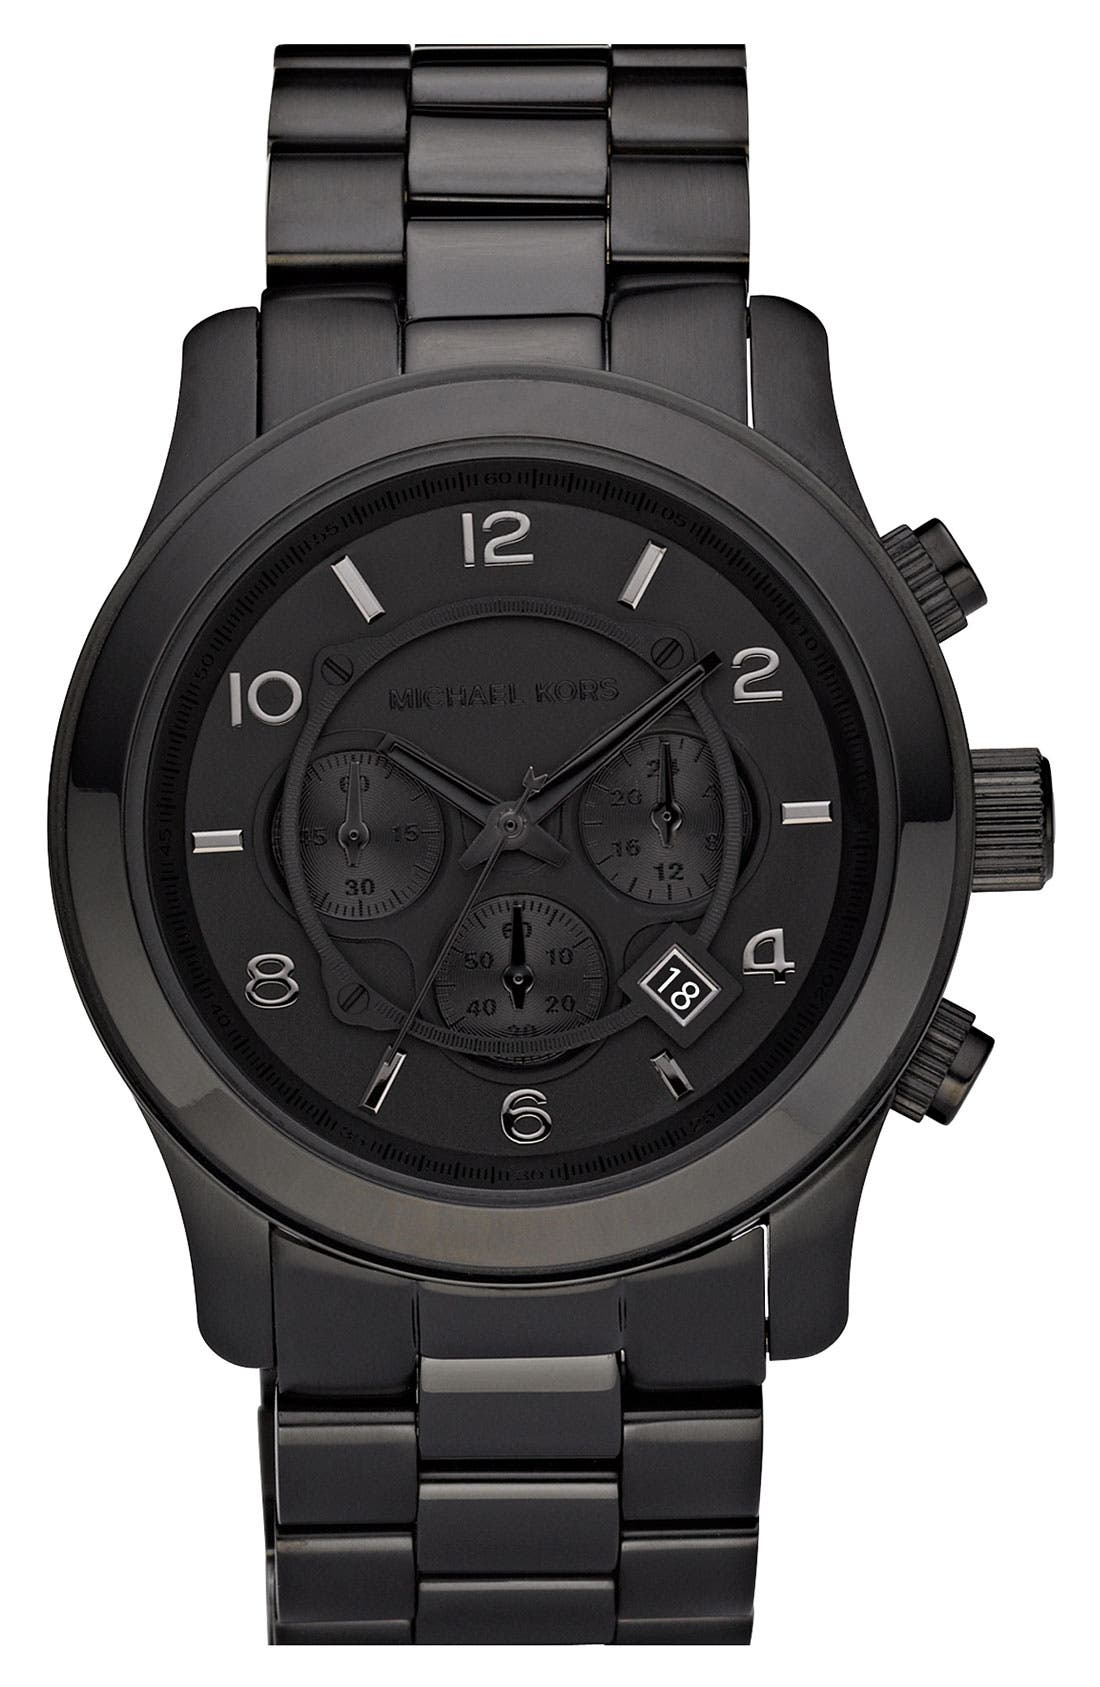 Main Image - Michael Kors 'Large Runway' Blacked Out Chronograph Watch, 45mm